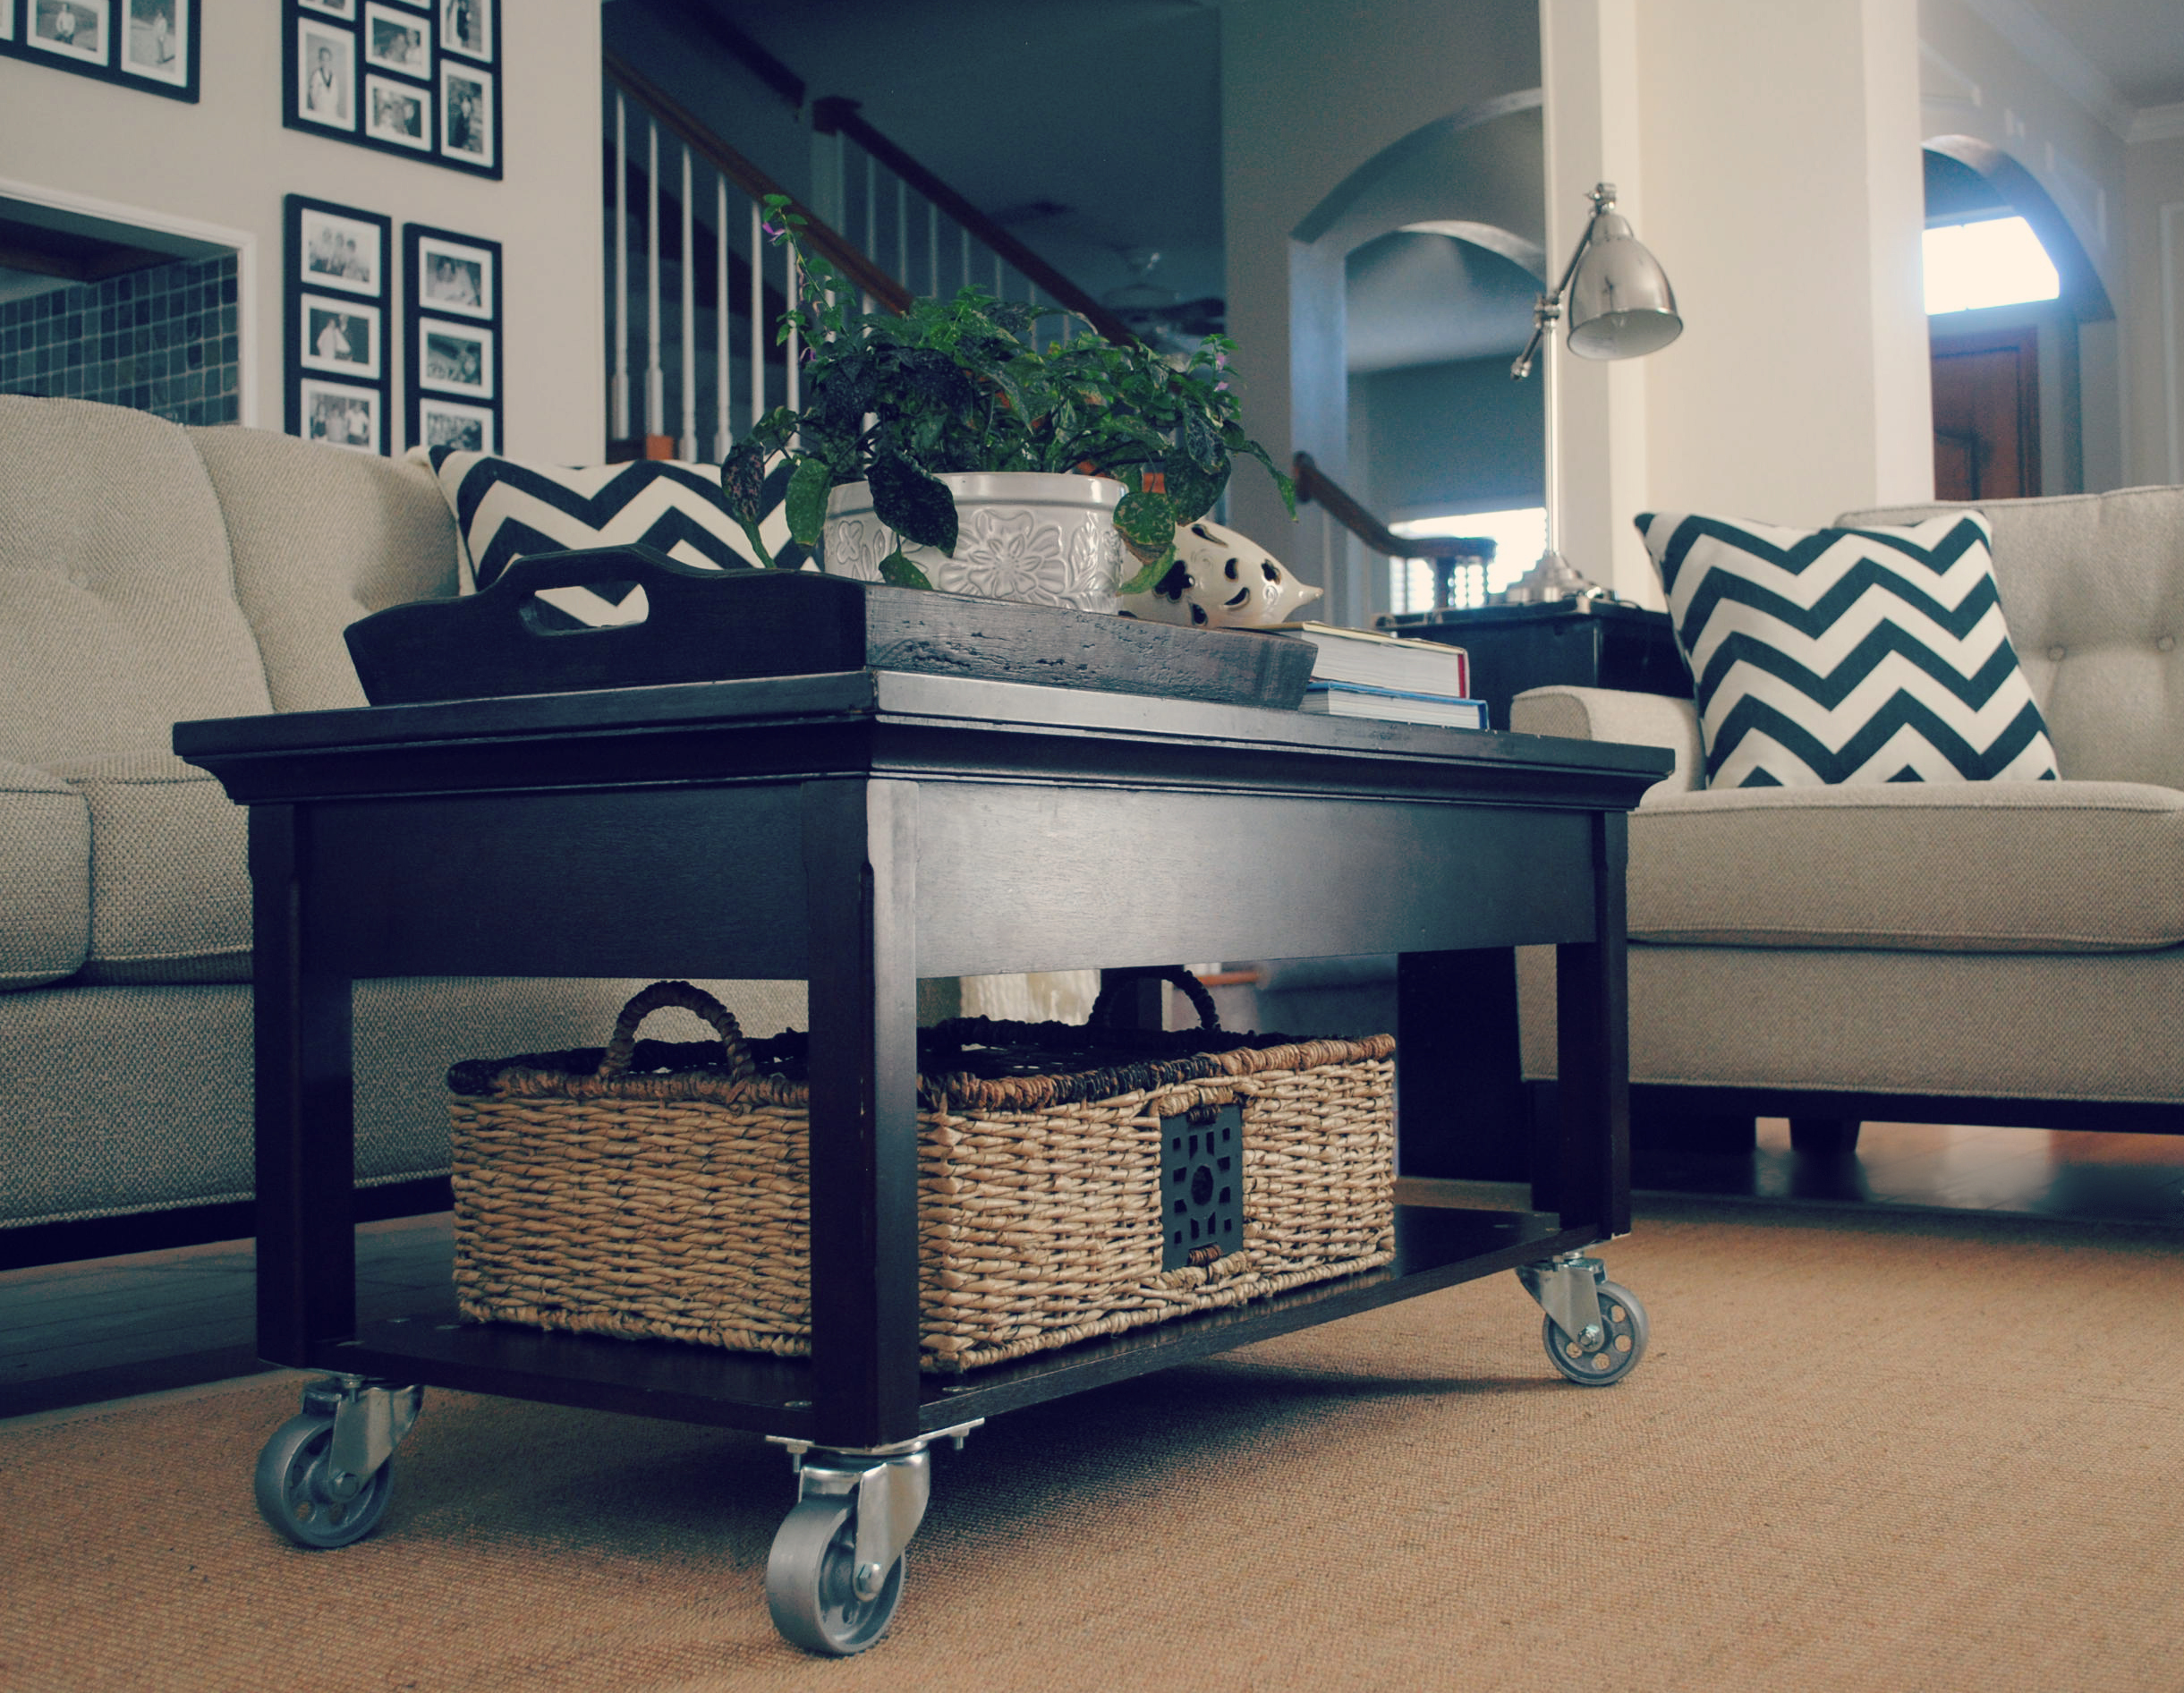 Adding casters to your coffee table